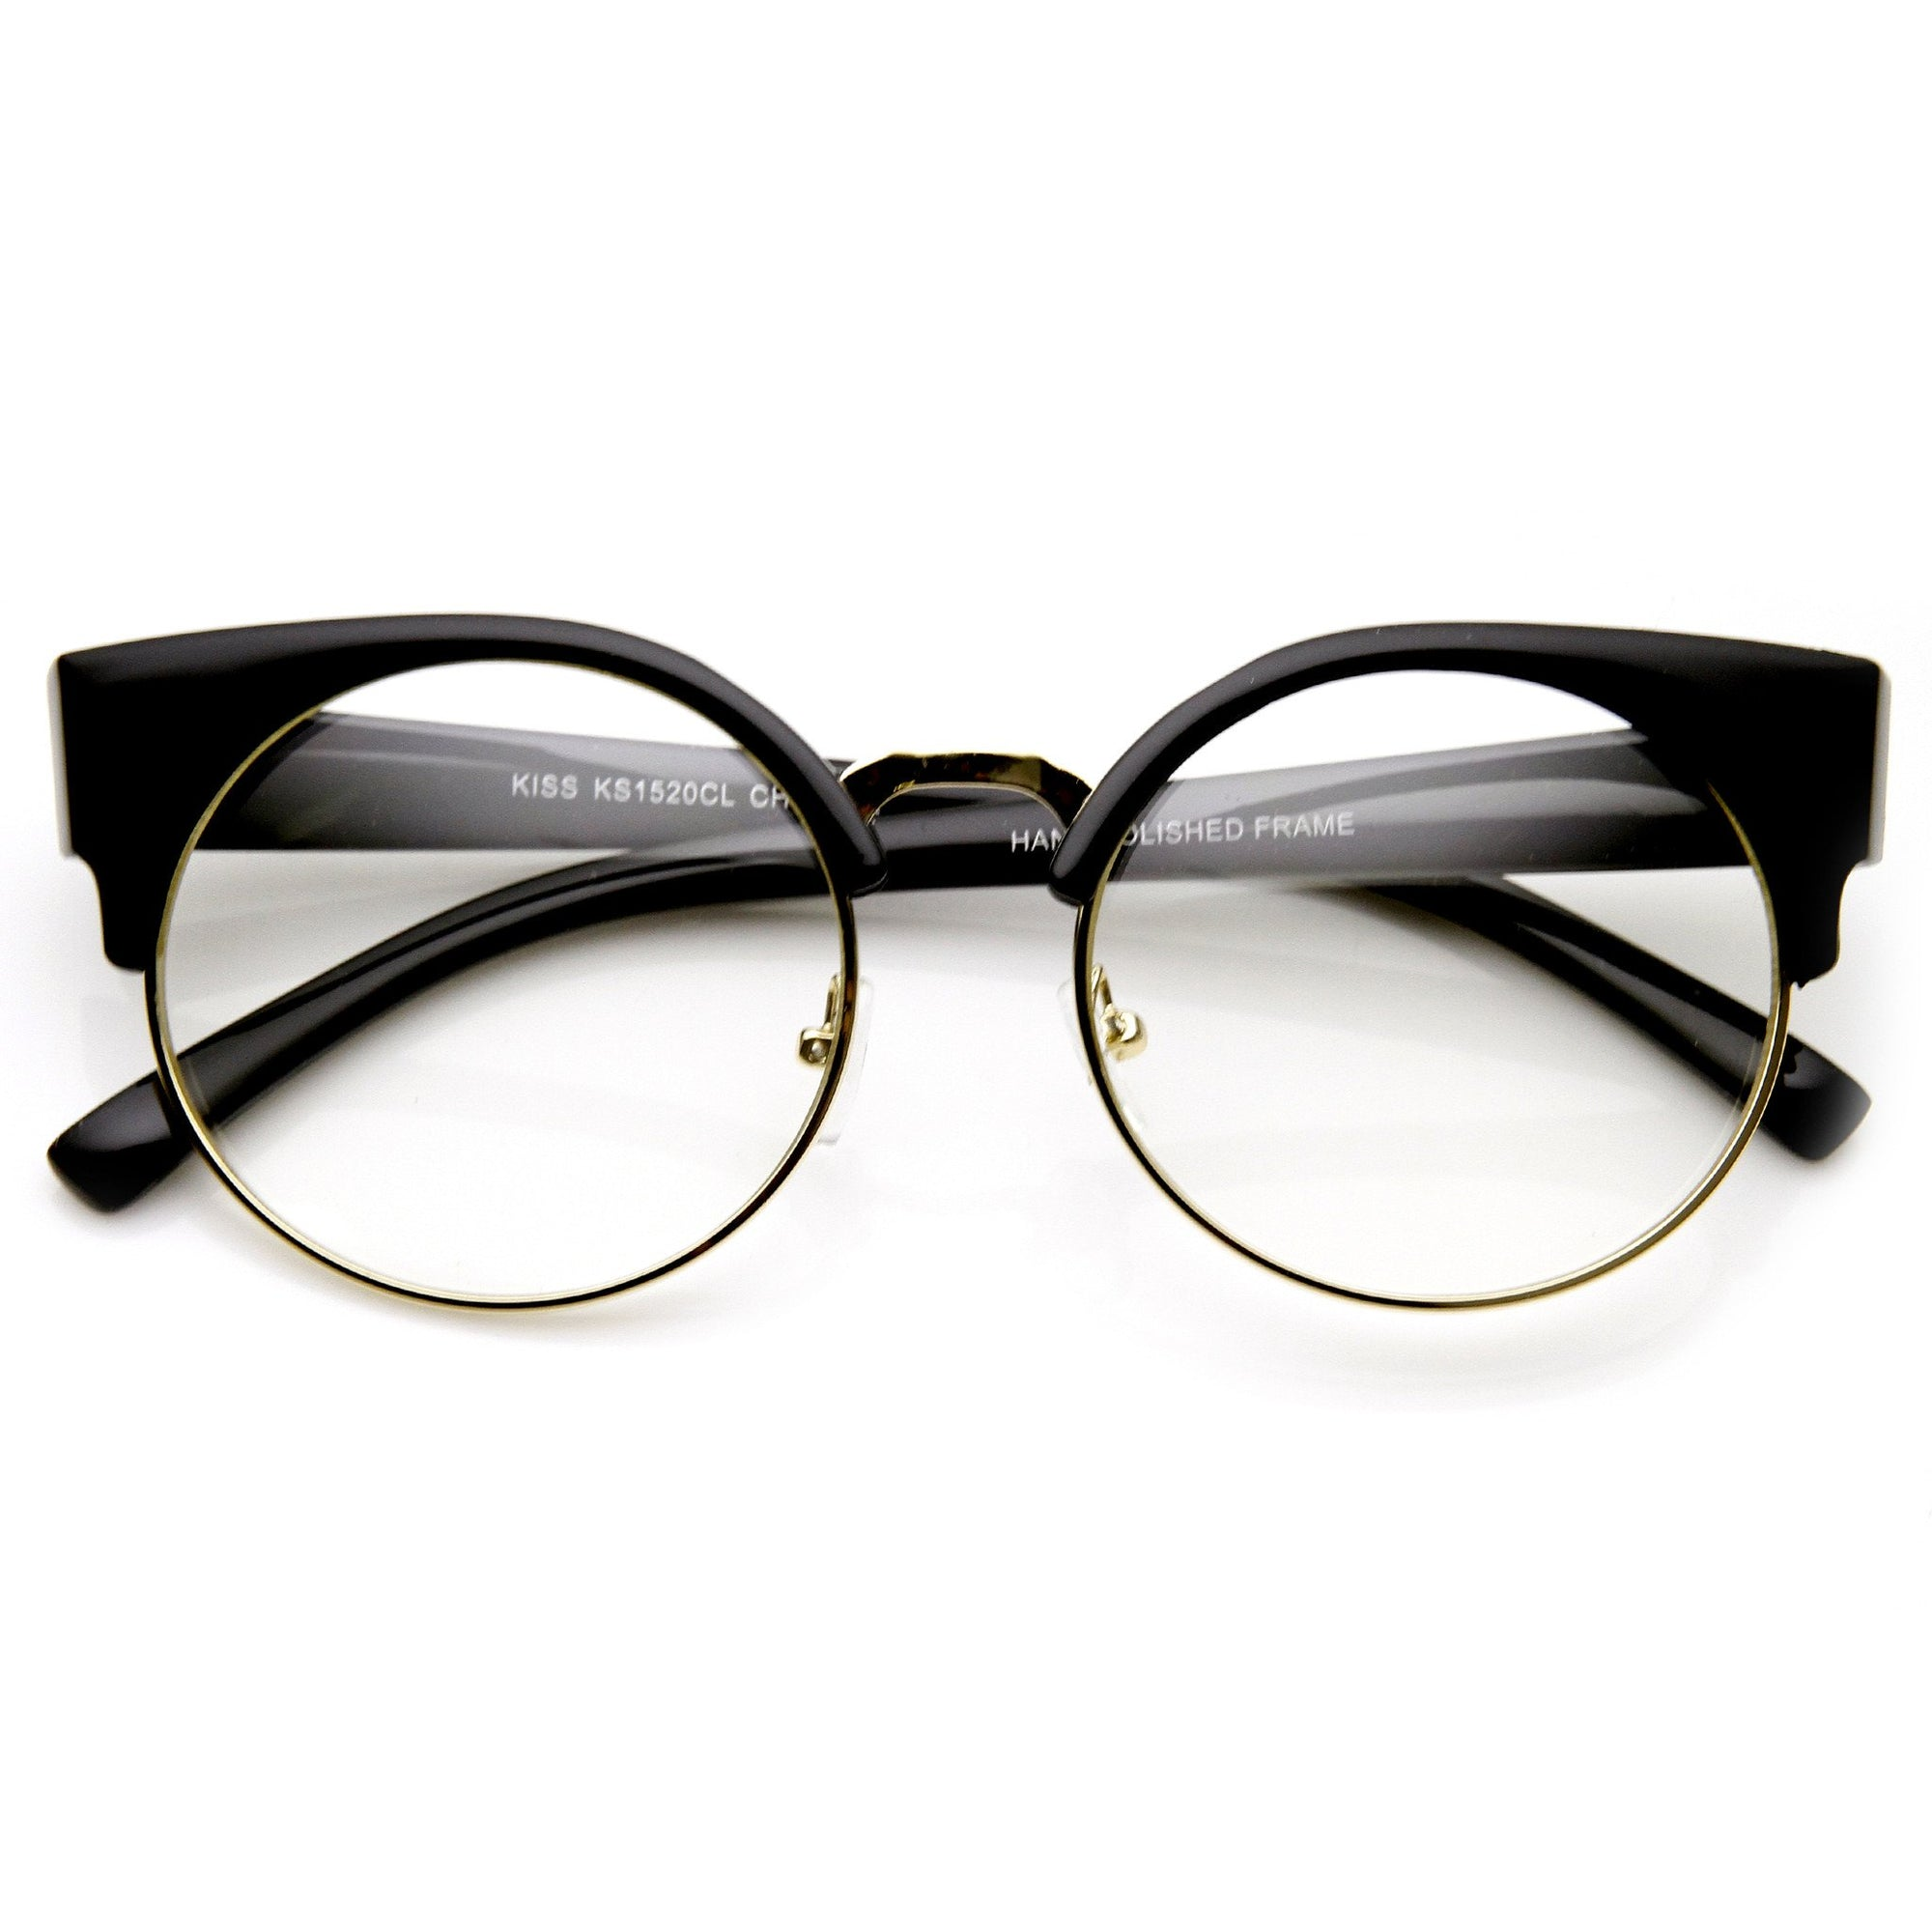 cc762048aa5 Indie Hipster Retro Round Cat Eye Clear Lens Glasses - zeroUV